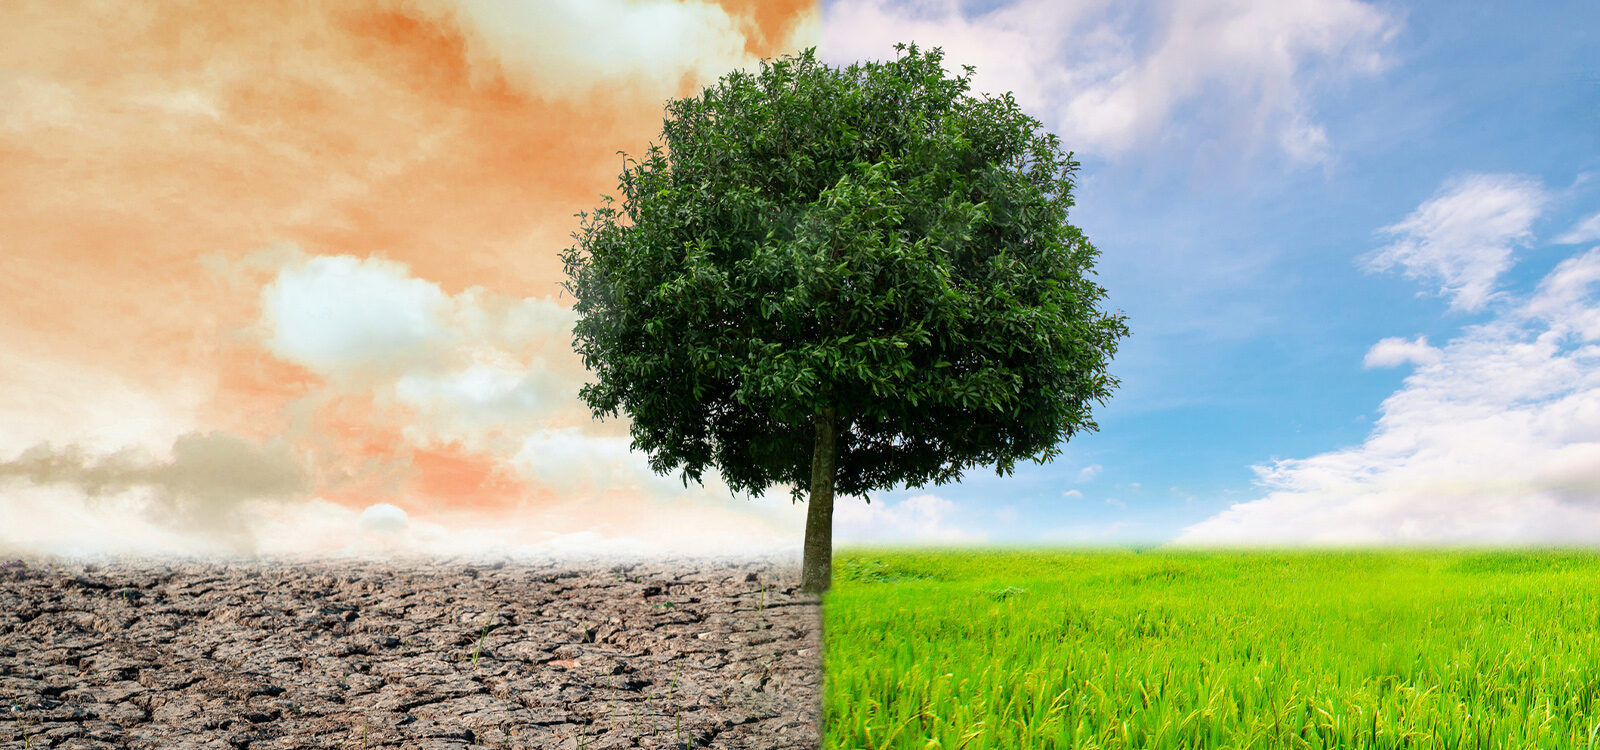 International Actuarial Association releases third paper in climate risk series